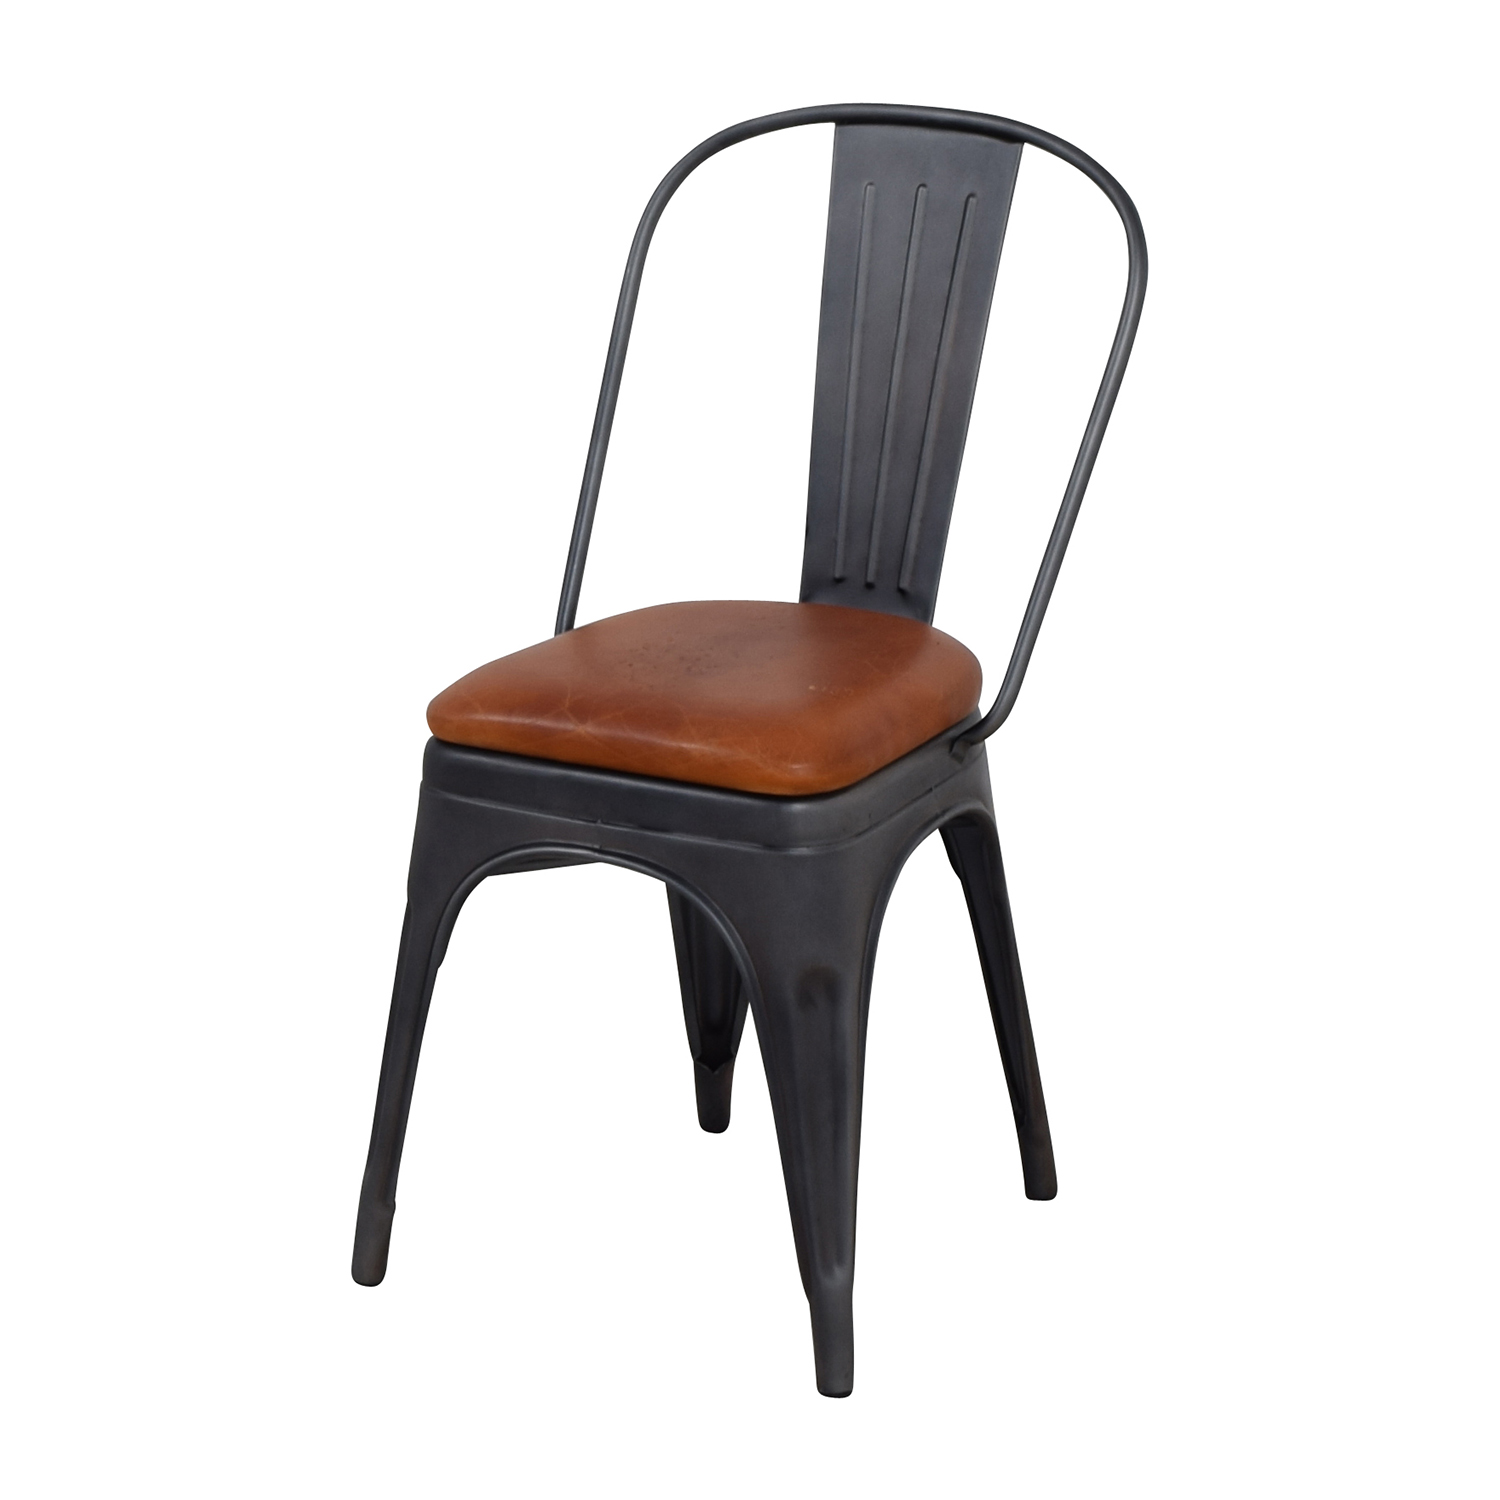 shop Modern Steel Desk Chair with Brown Leather Seat online